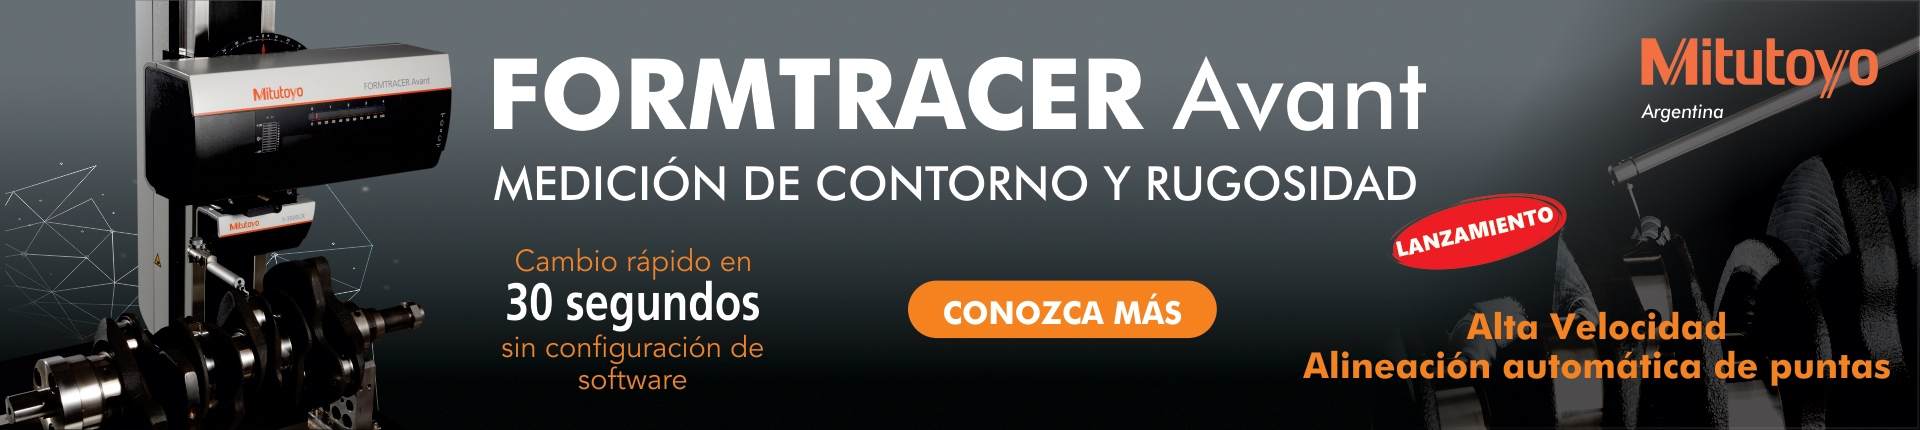 Formtracer